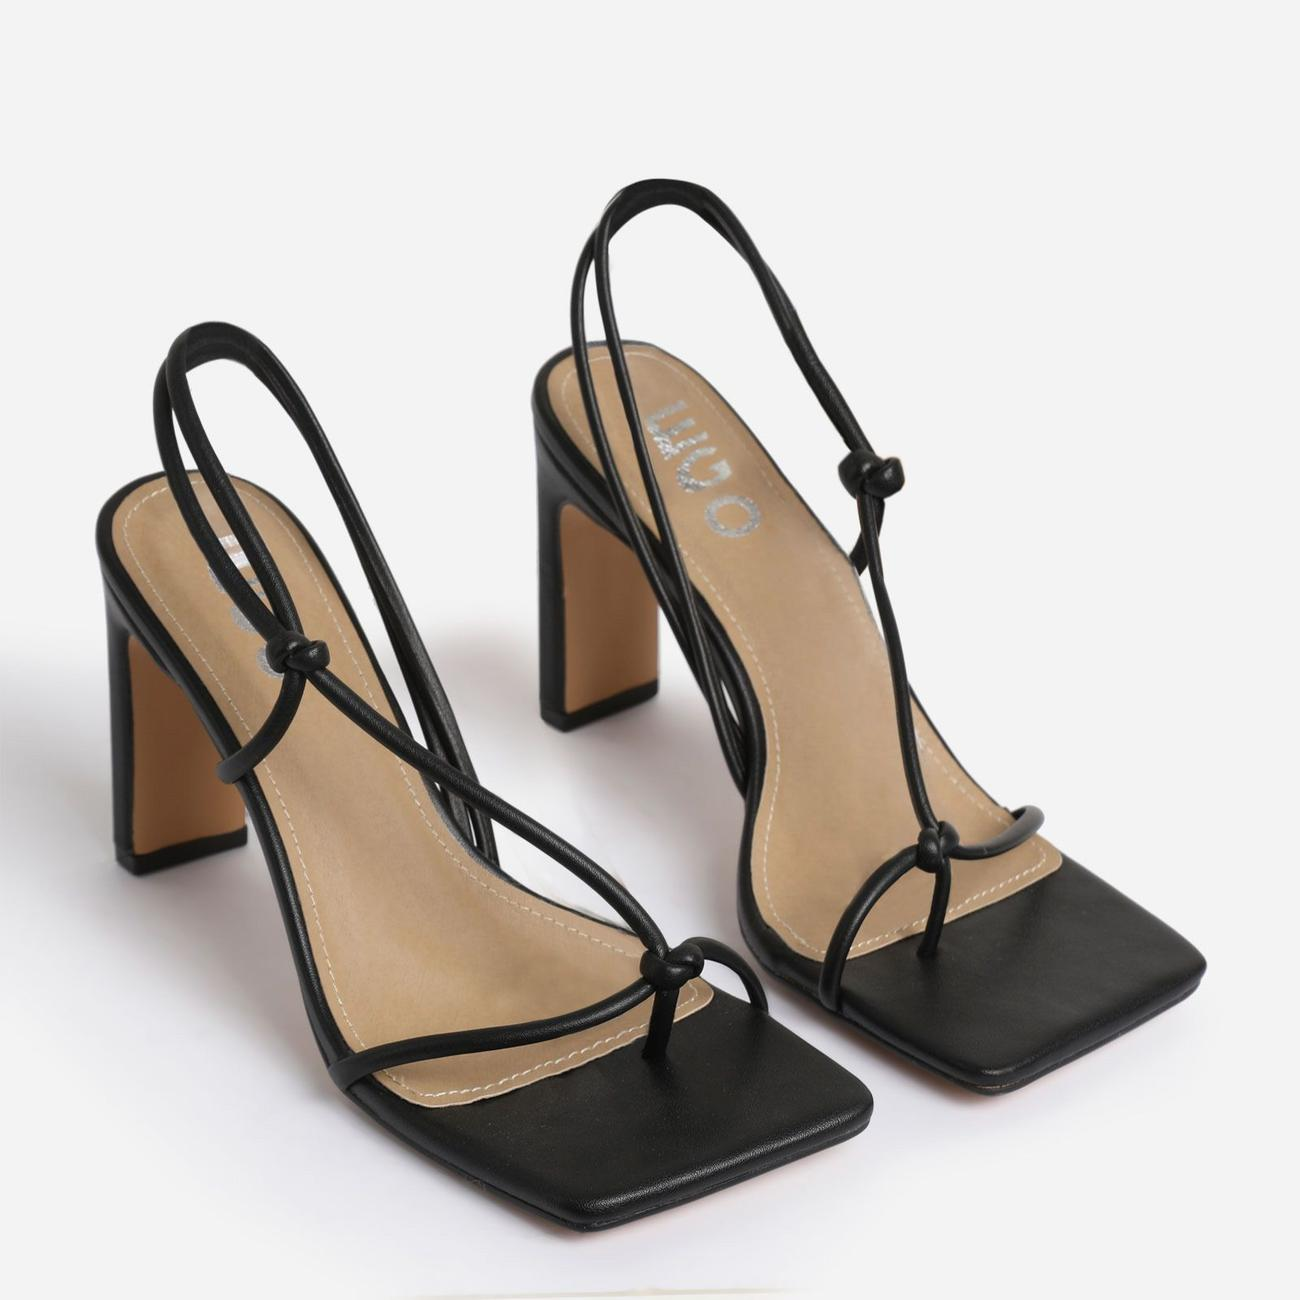 Marble Square Toe Knot Detail Heel In Black Faux Leather Image 3